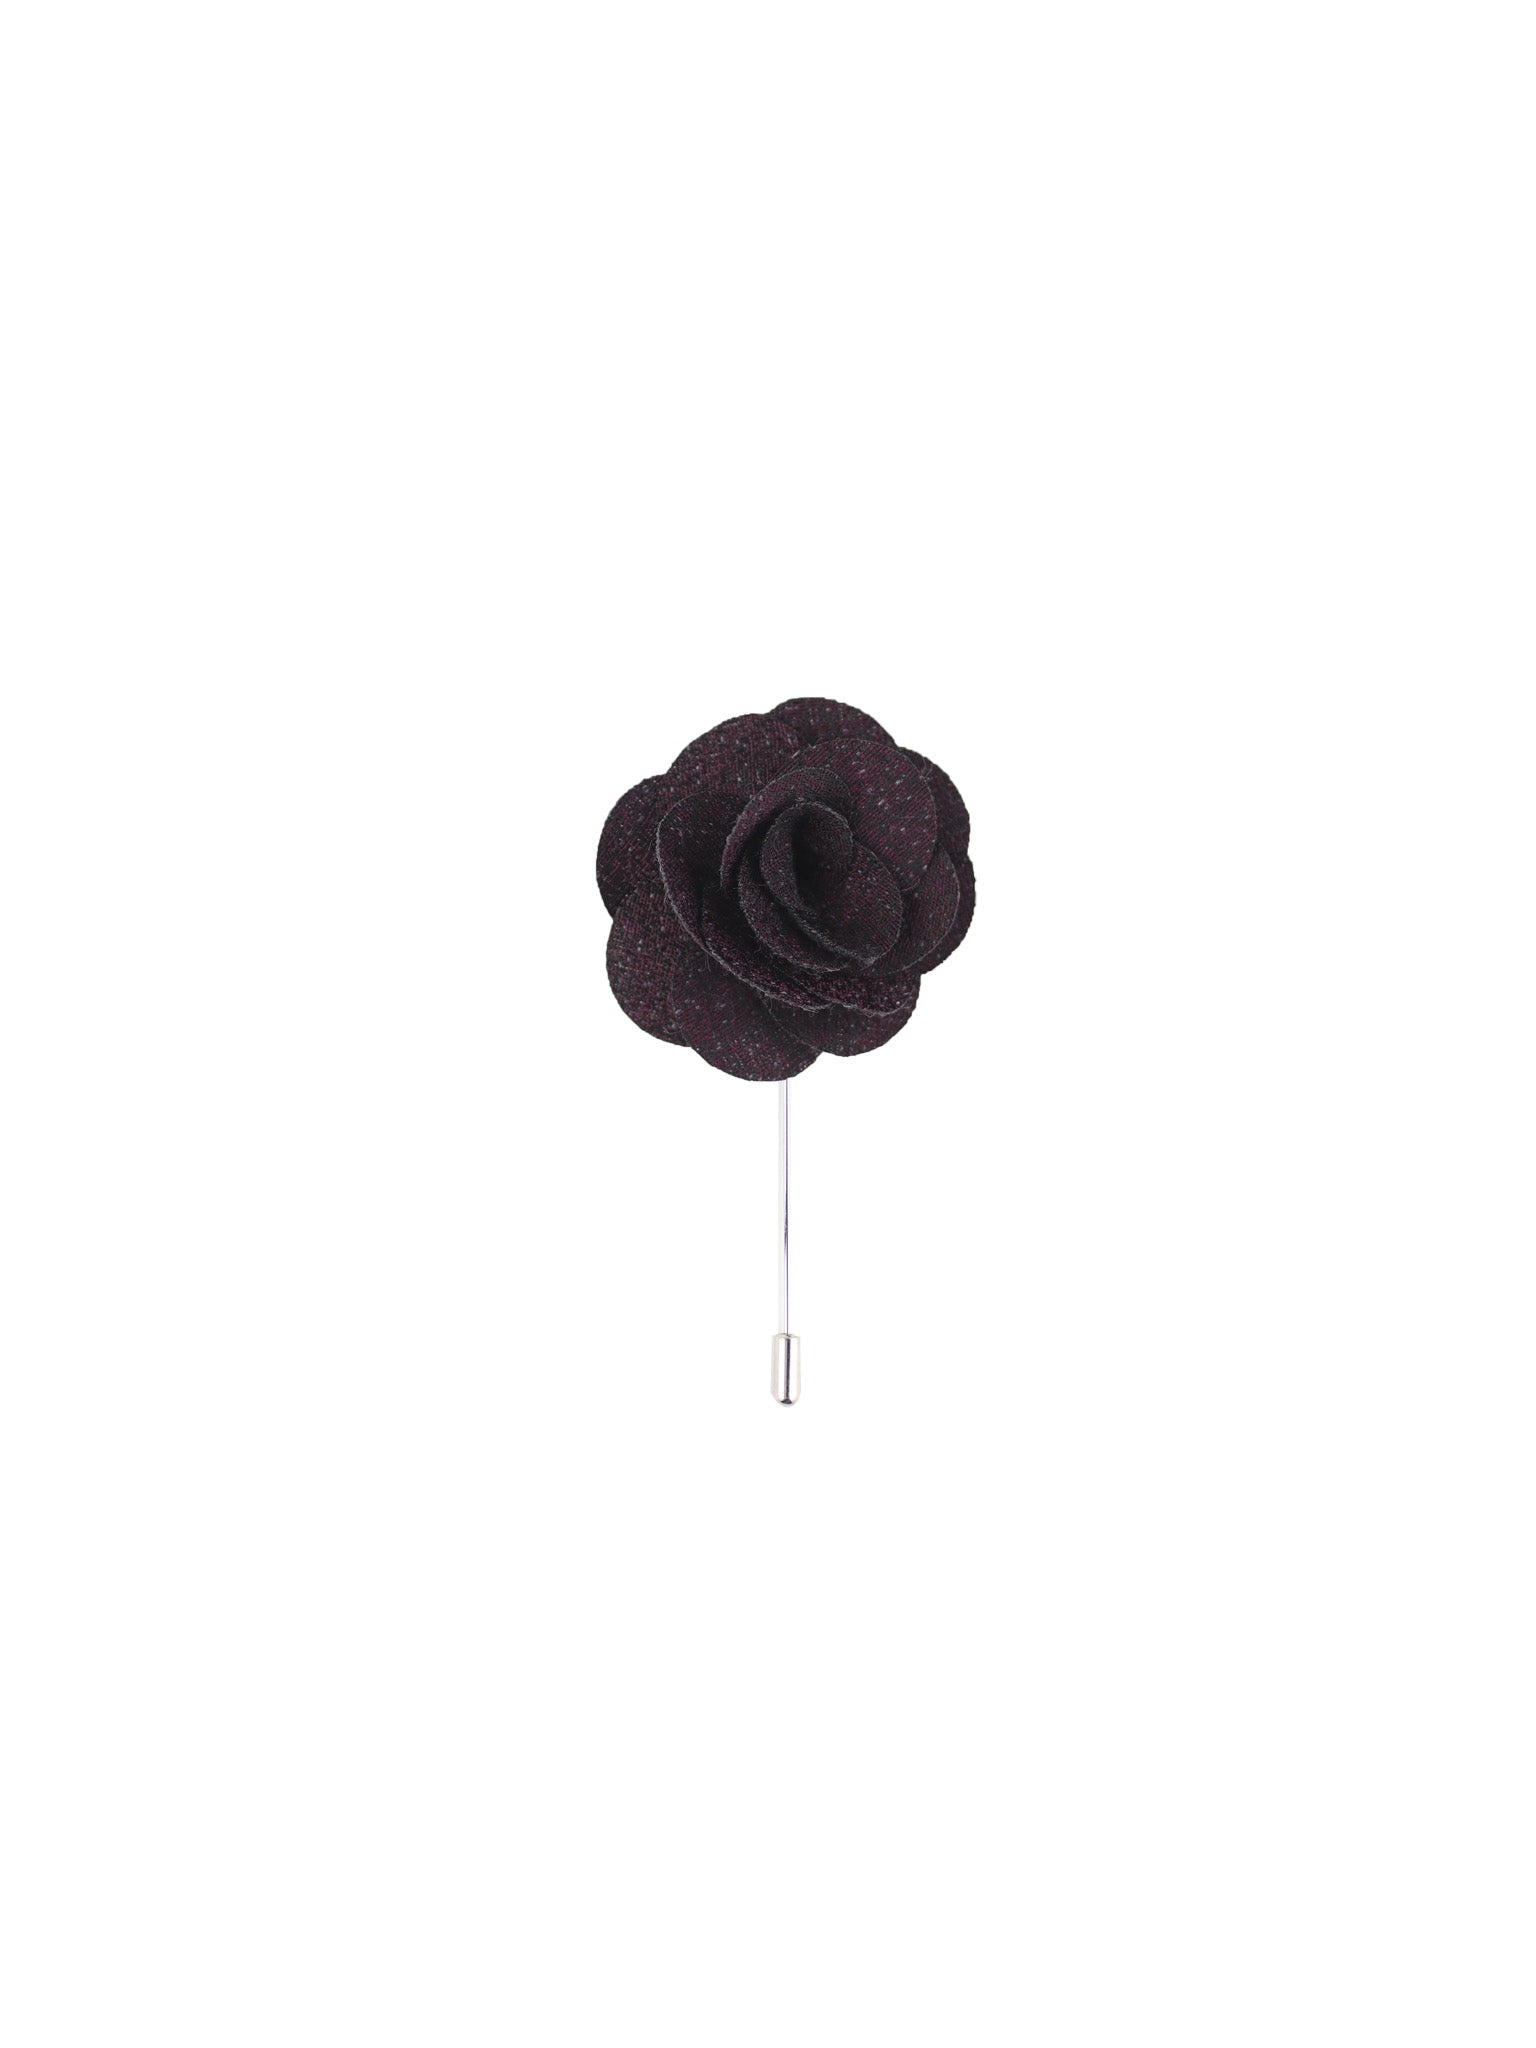 Burgundy Textured Lapel Pin from DIBI